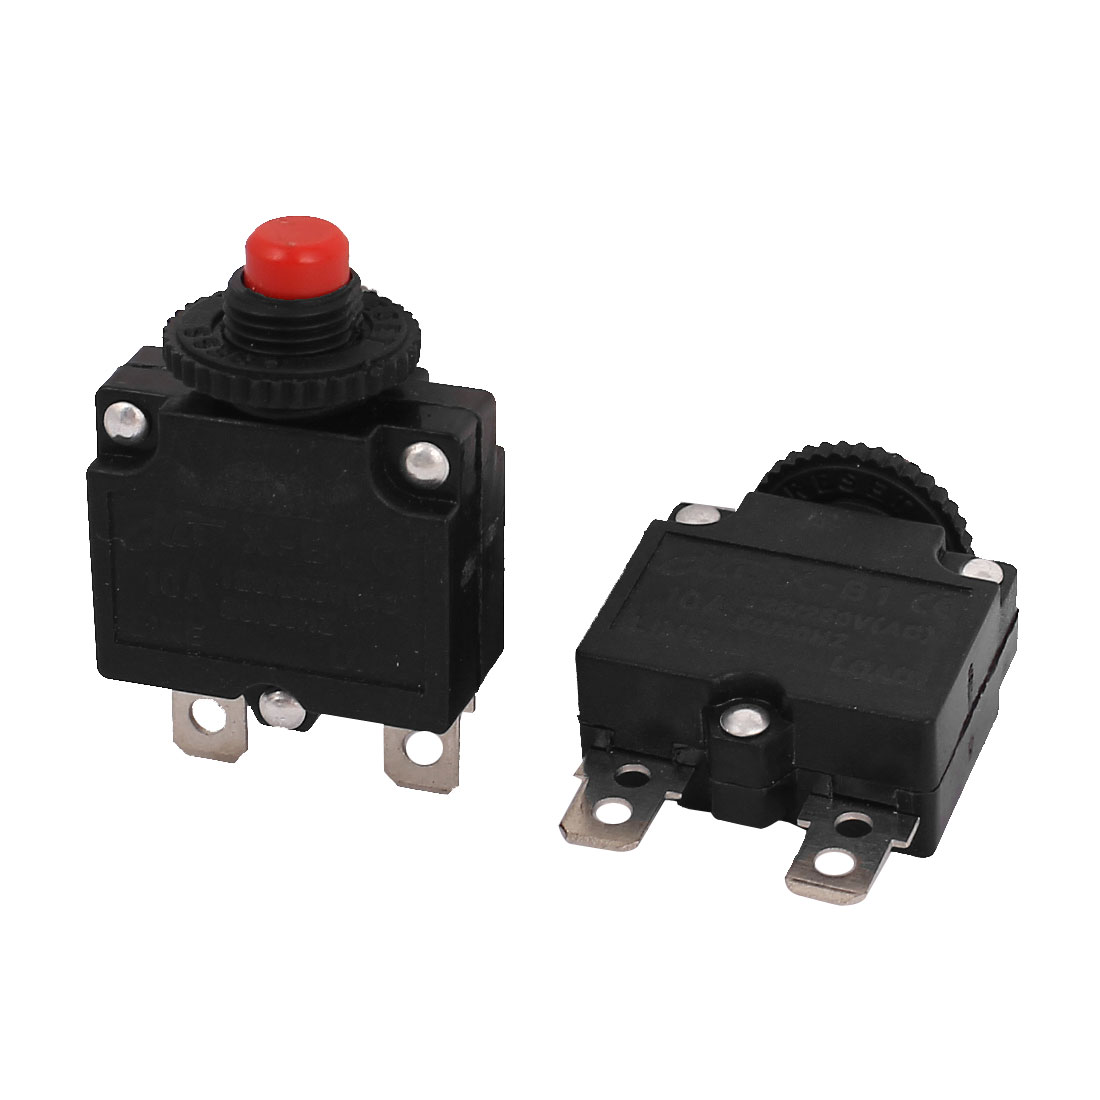 AC 125V/250V 10A 10mm Thread NC Push Reset Overload Circuit Breaker 2pcs